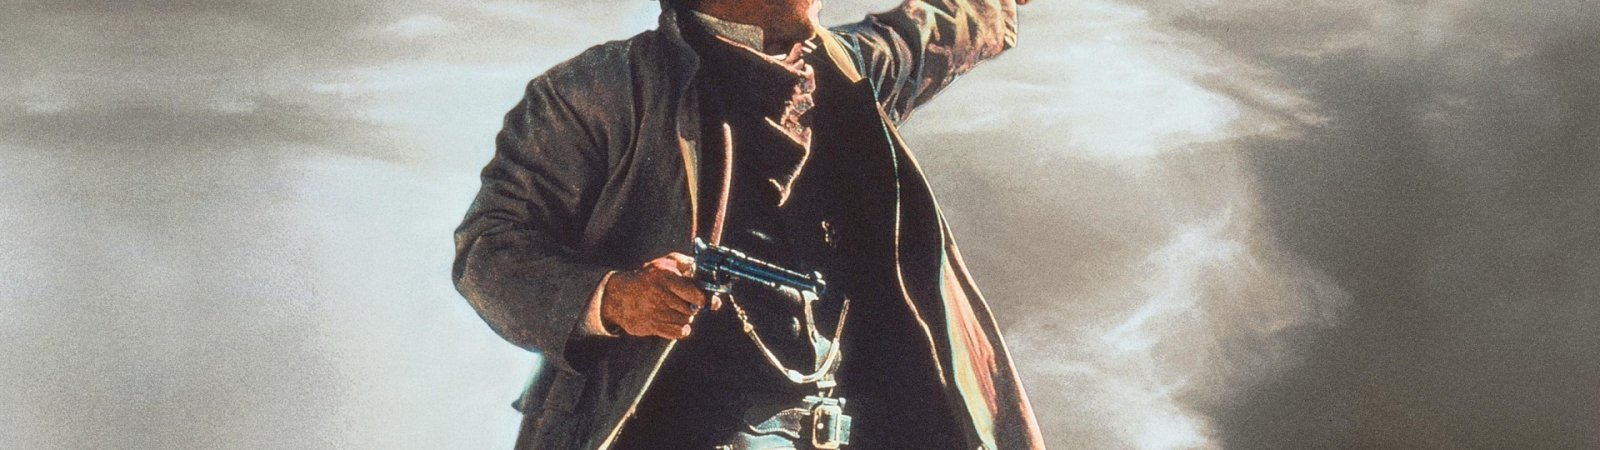 Photo du film : Wyatt earp